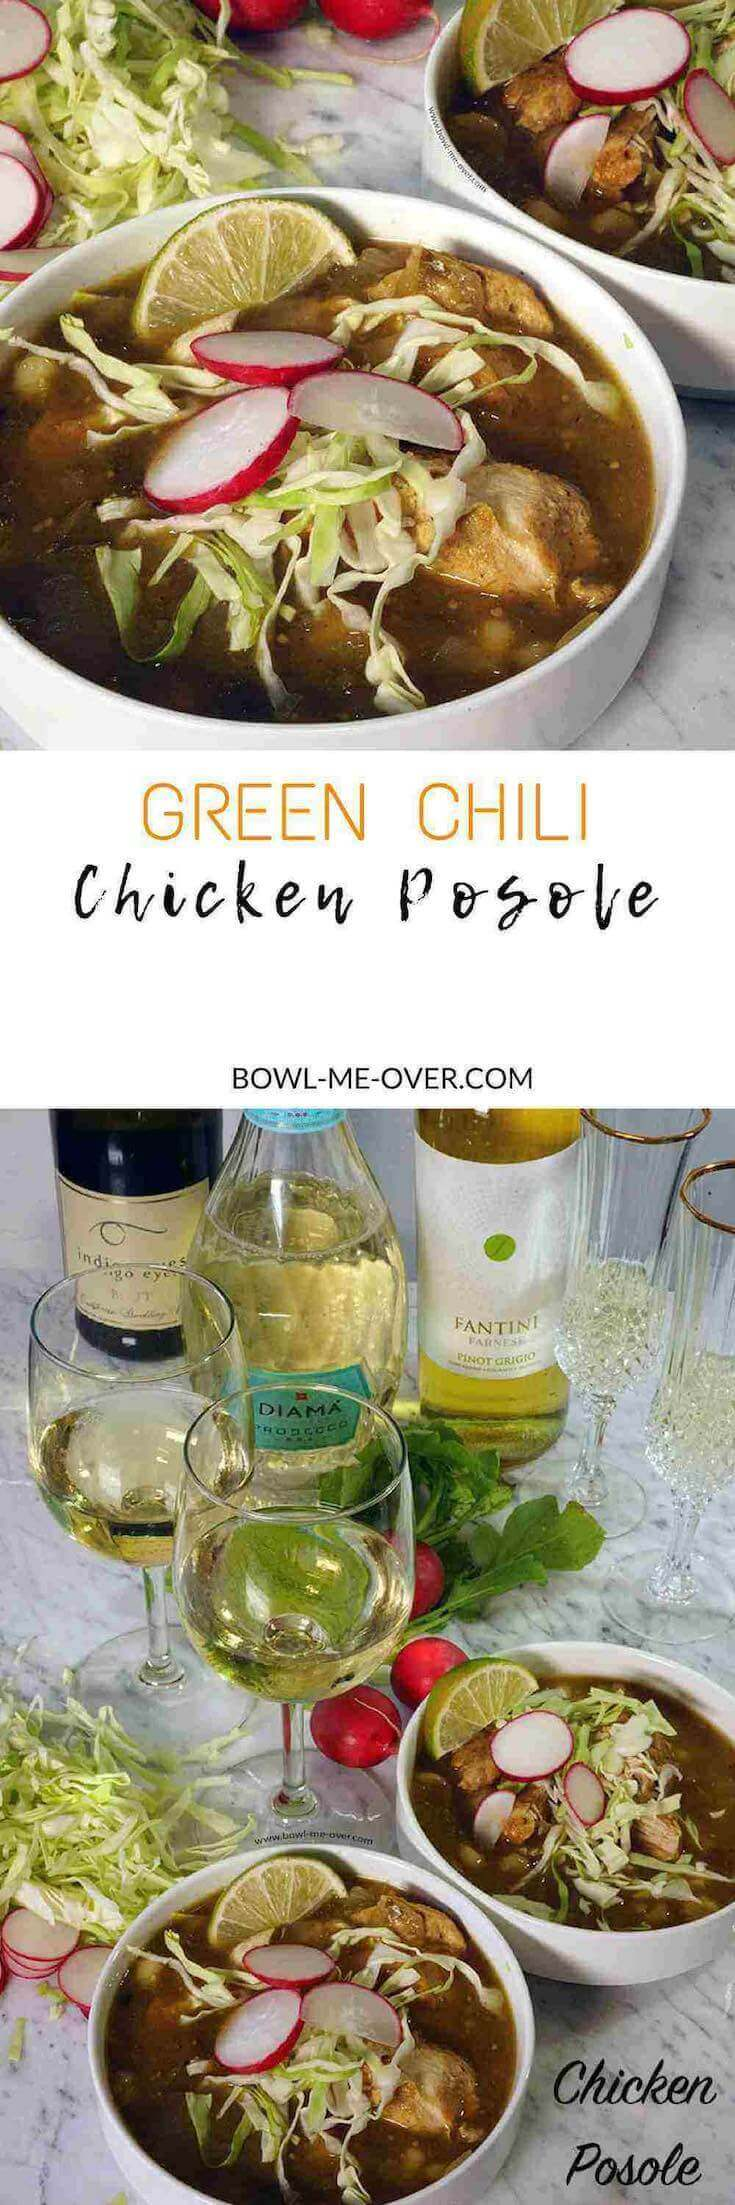 Want authentic flavor? Serve up a big hearty bowl of Green Chili Chicken Posole.